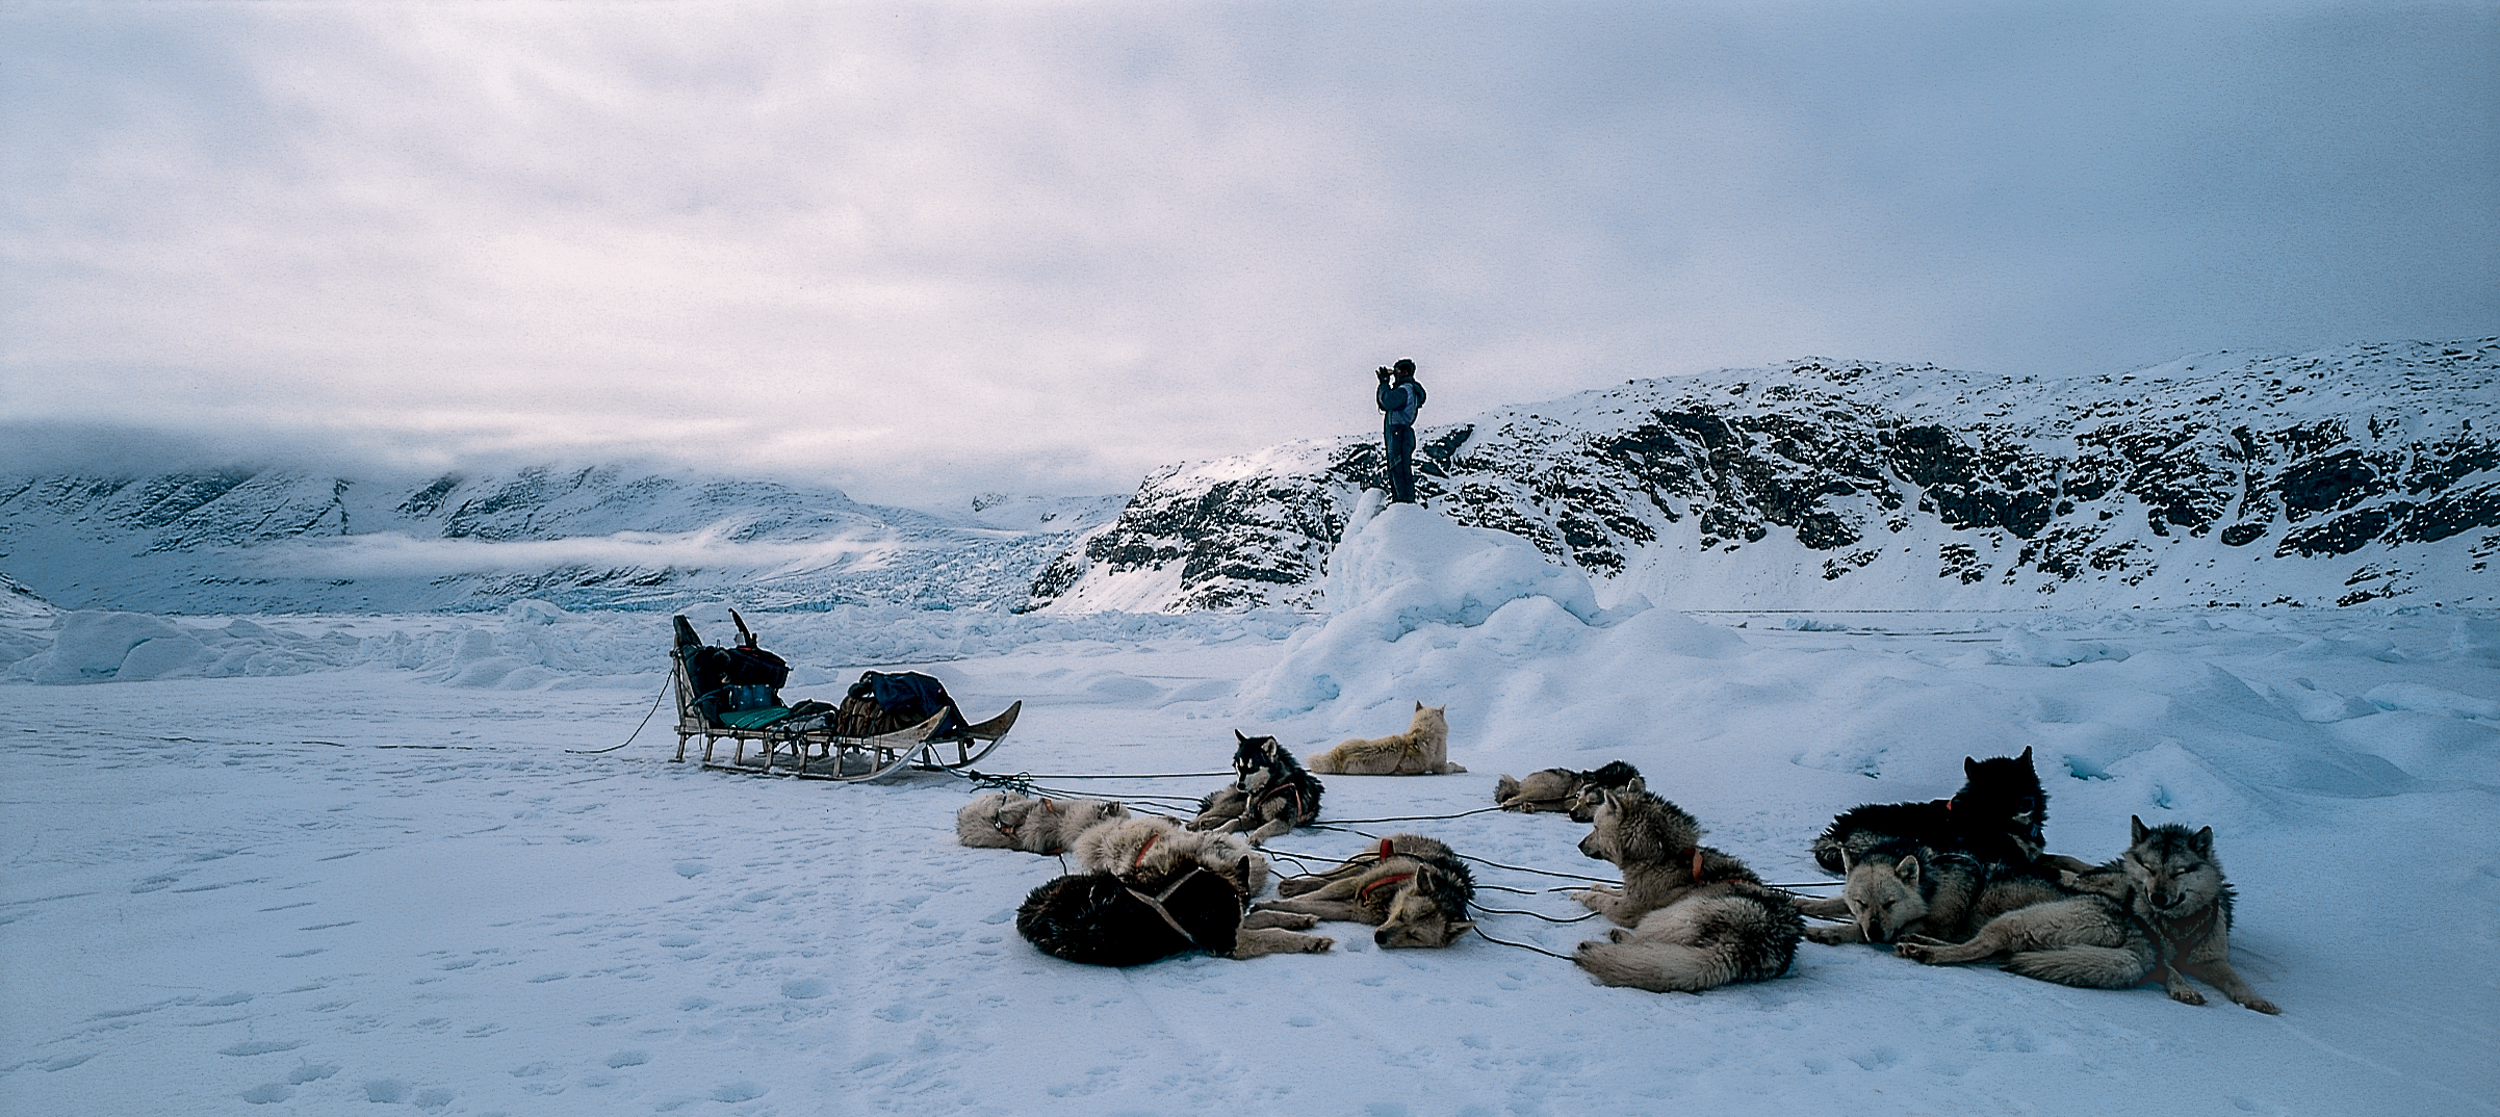 Following the footprints of a polar bear. Ulrik Sanimuinaq with his dogs on sea-ice in arctic wilderness, two days from the nearest habited settlement.  JONAA©Kristjan Fridriksson